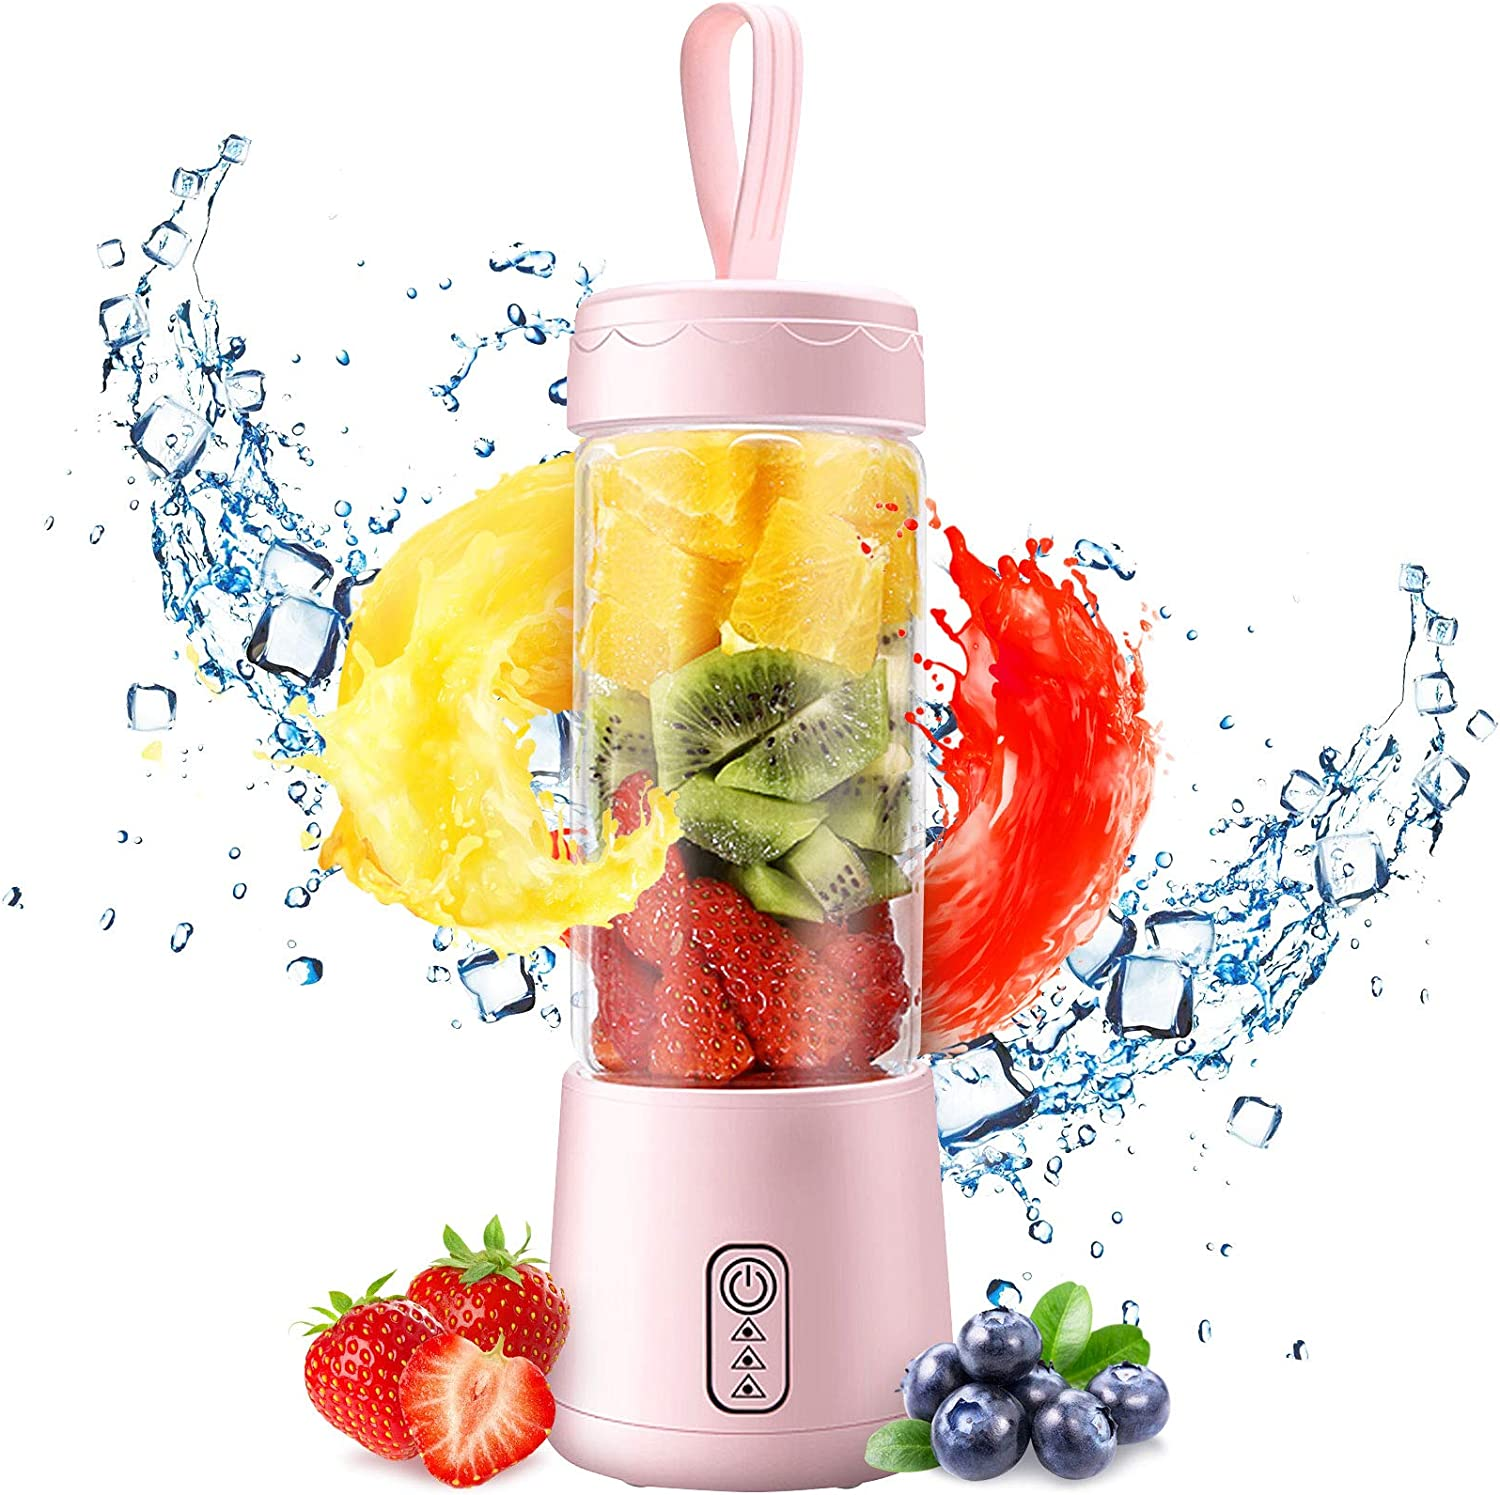 Mini Blender, Portable Blenders for Kitchen with USB Rechargeable, Personal Size Blender 3D Six Blades, 380ML Glass Blender Cup, Single Serve Blender for Juice/Ice Smoothies/Shakes/Fruit Vegetable